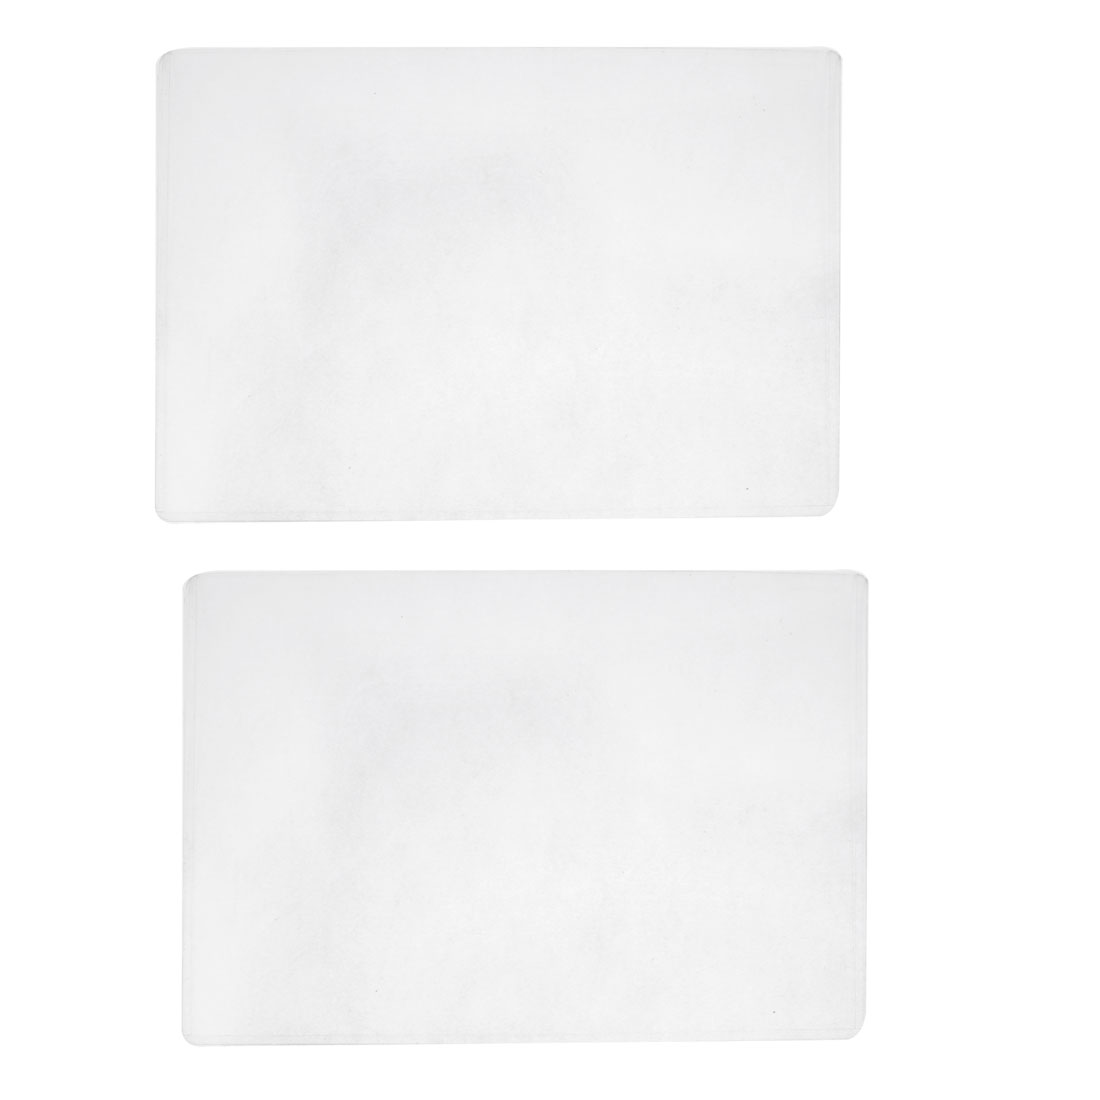 2pcs Clear Name Horizontal ID Card Holder Case Sleeves Protector Cover